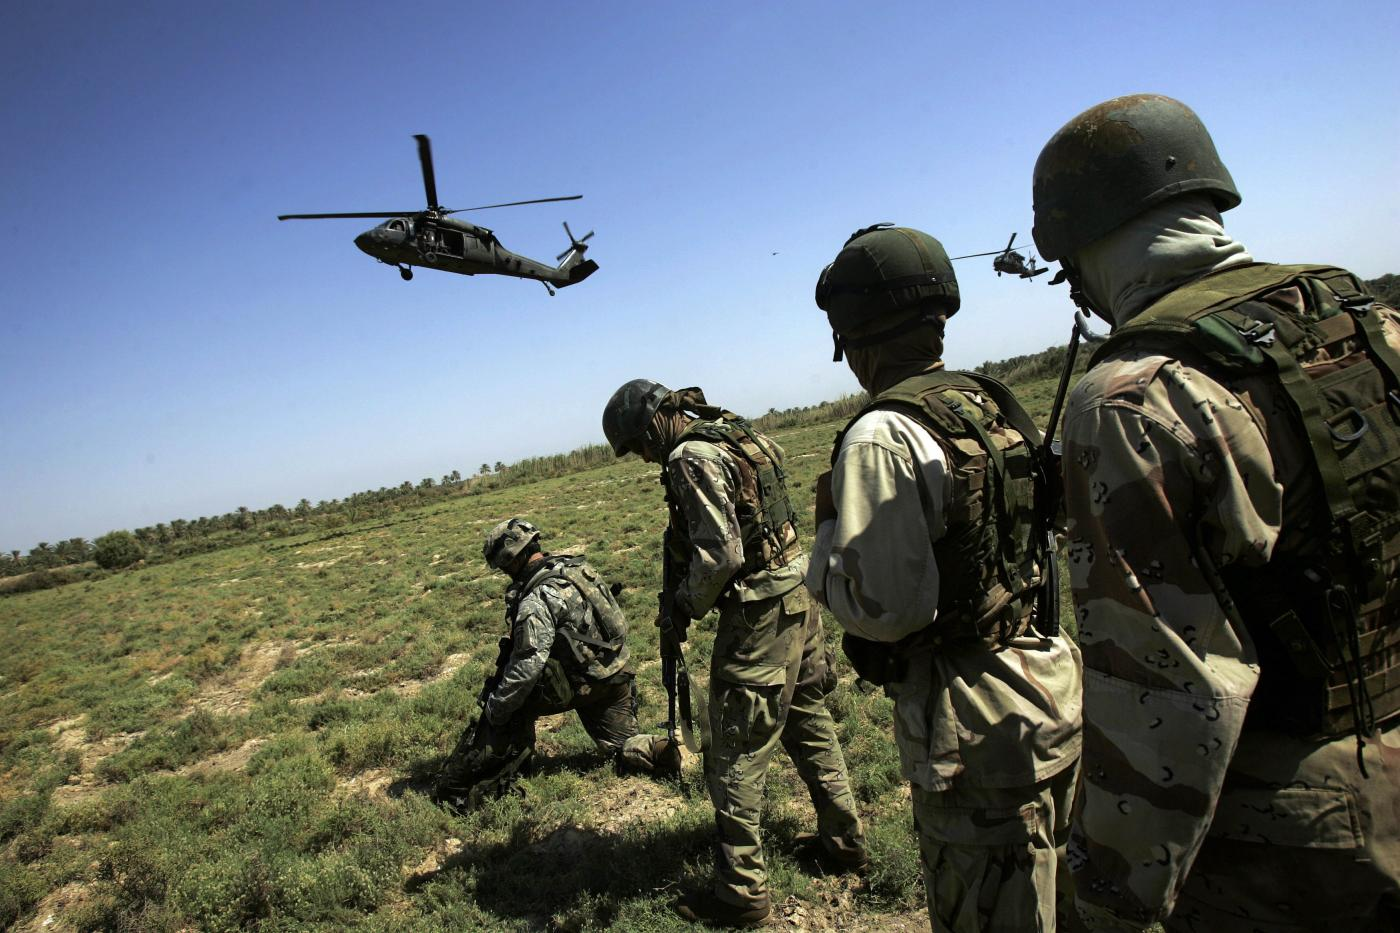 Navy SEAL abuse allegations stoke fears of endless US wars